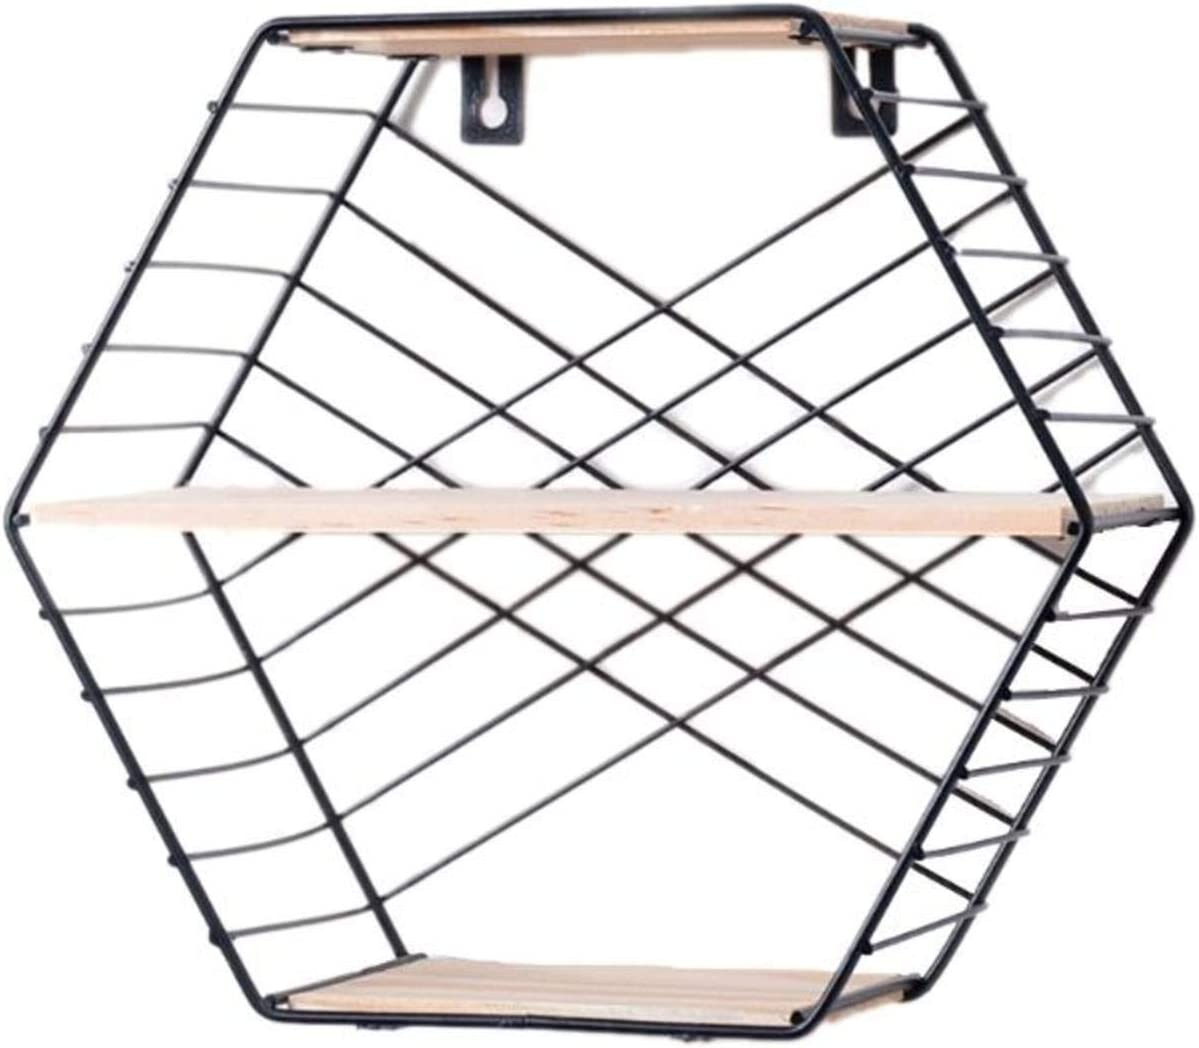 N\C Wrought Iron Hexagonal Limited price sale Wall Room Living Columbus Mall Bedroom Hanging